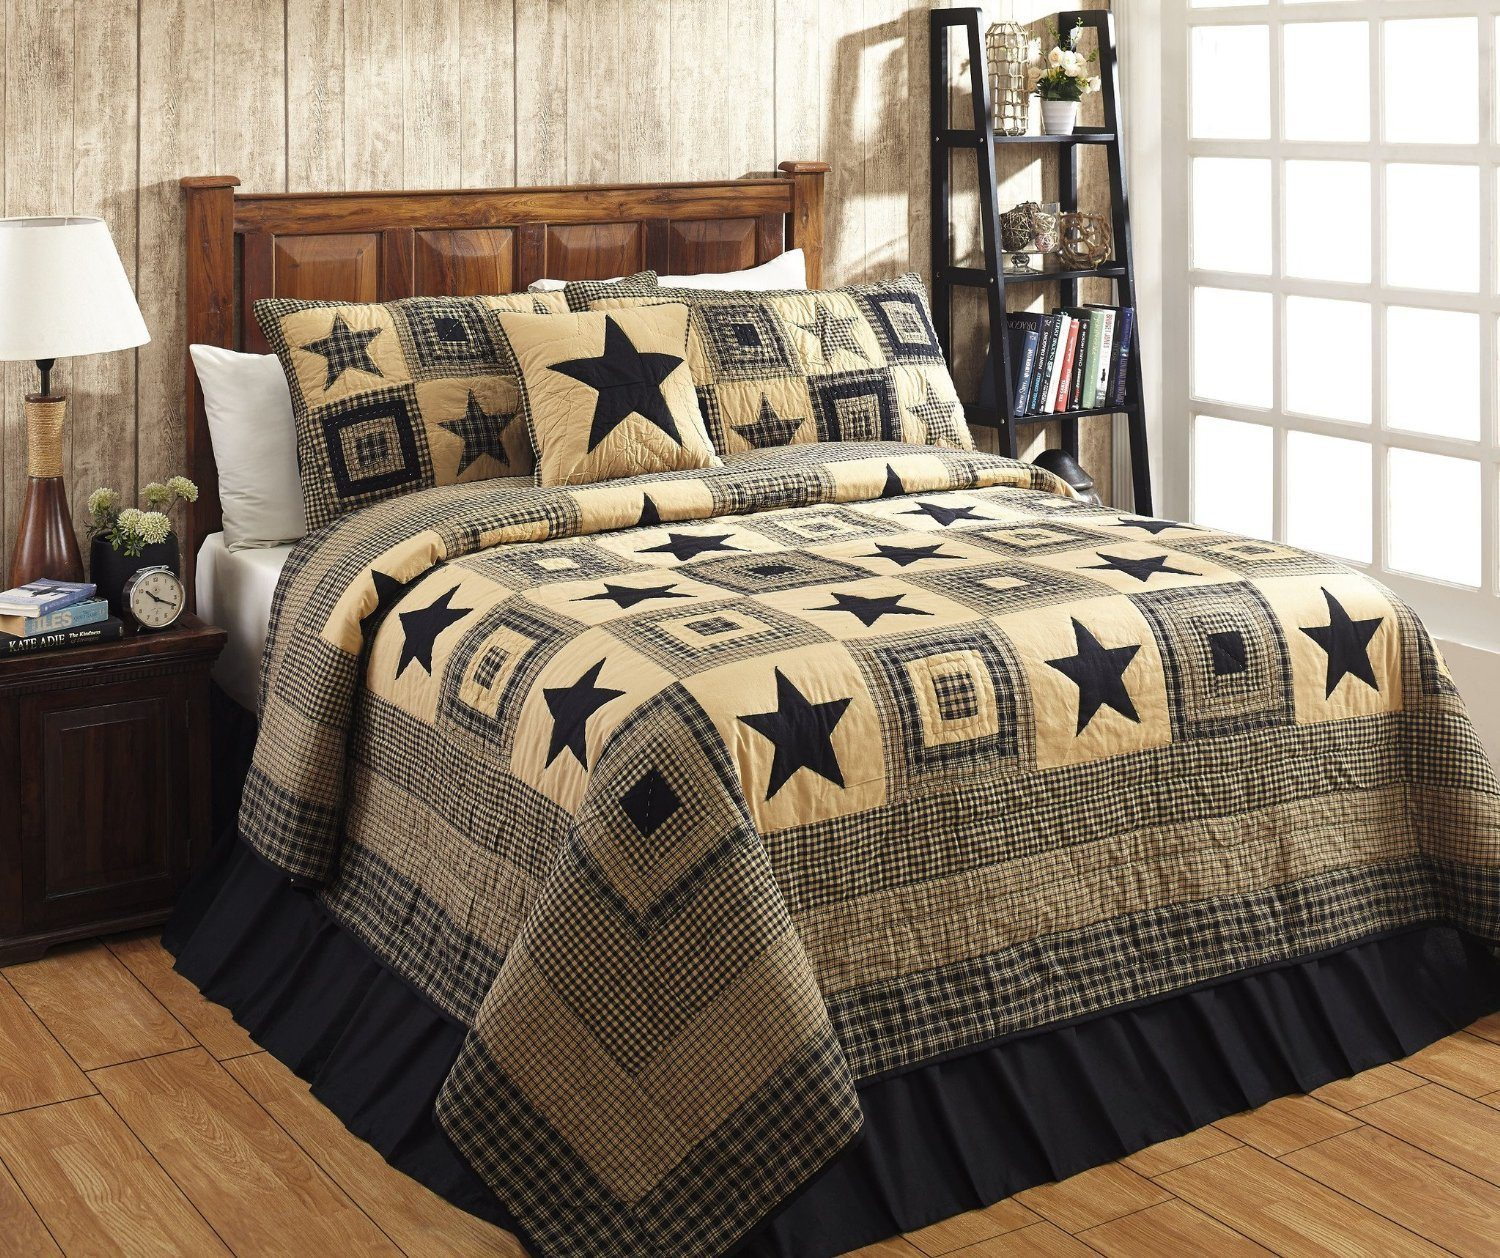 Colonial Star Black Quilt Bundle in 4